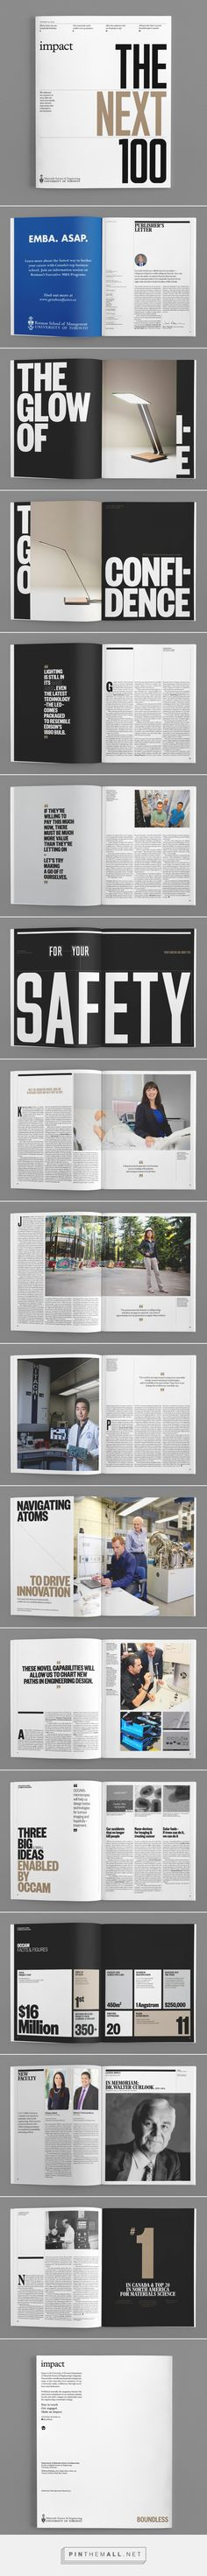 Impact Magazine, Issue 3 on Behance